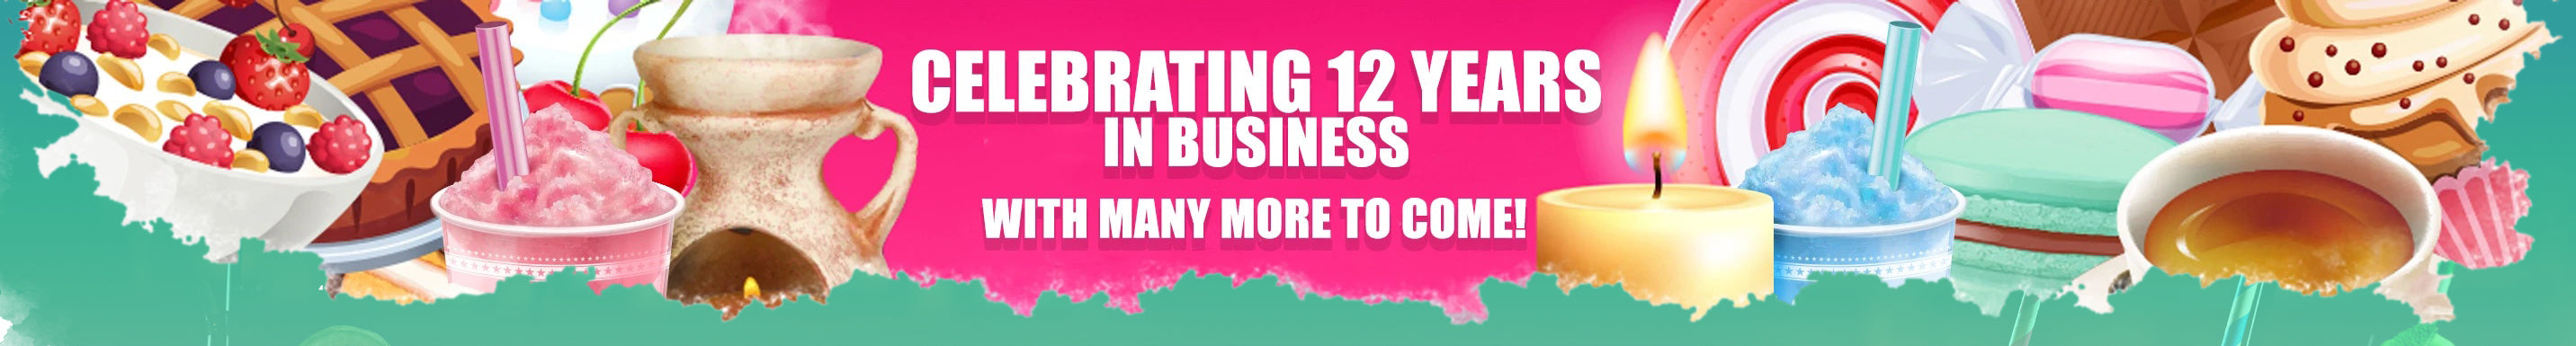 Celebrating 12 years in business and looking forward to many more!